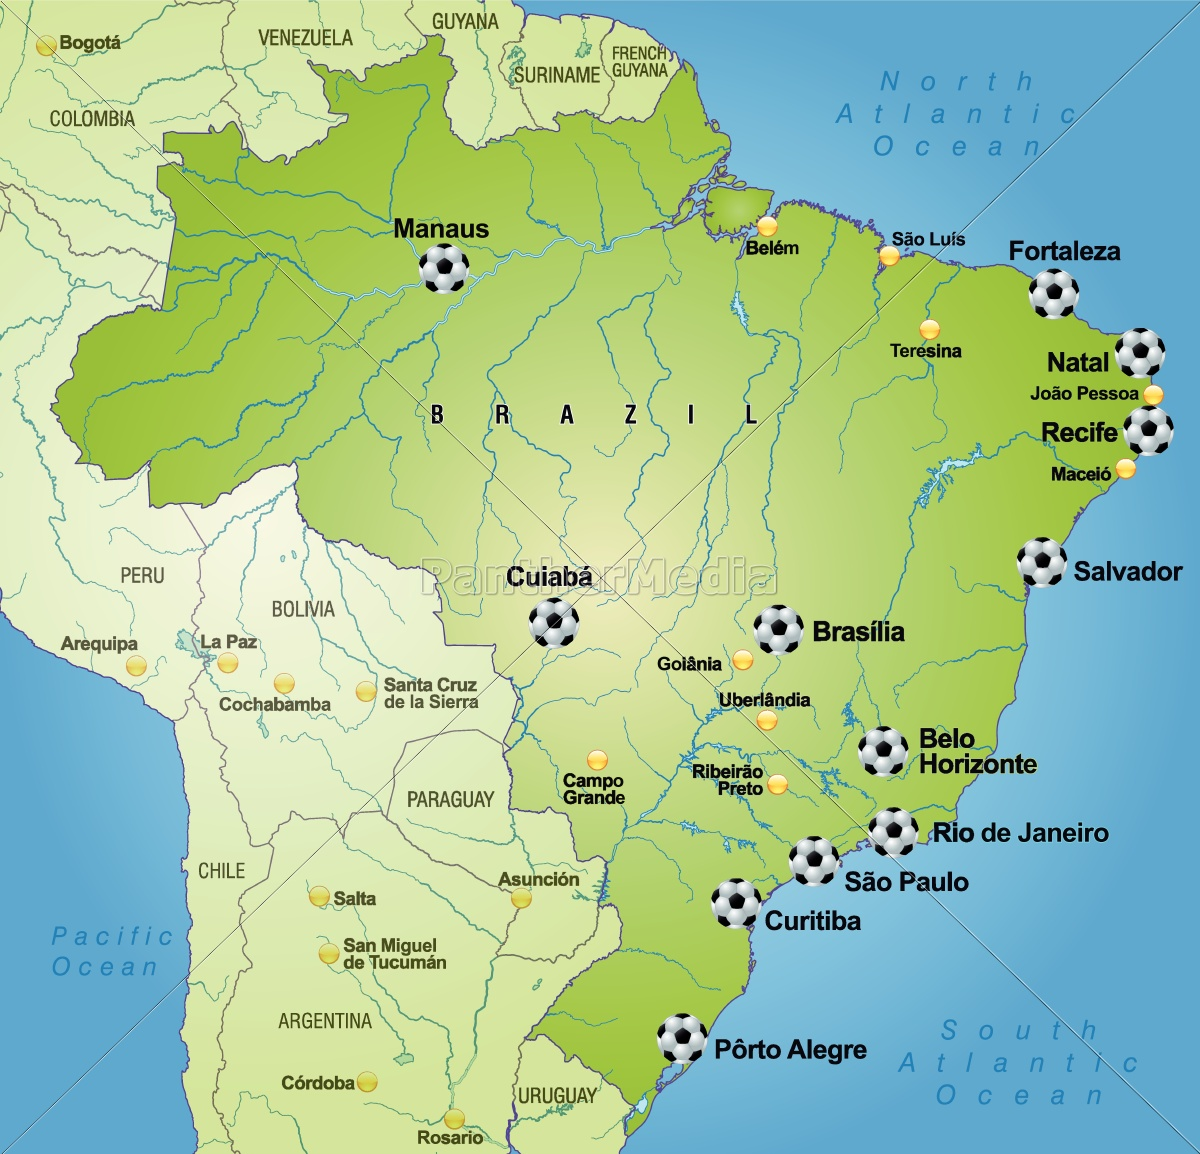 Download Brasilien Kort Garmin Charritestycent Tk